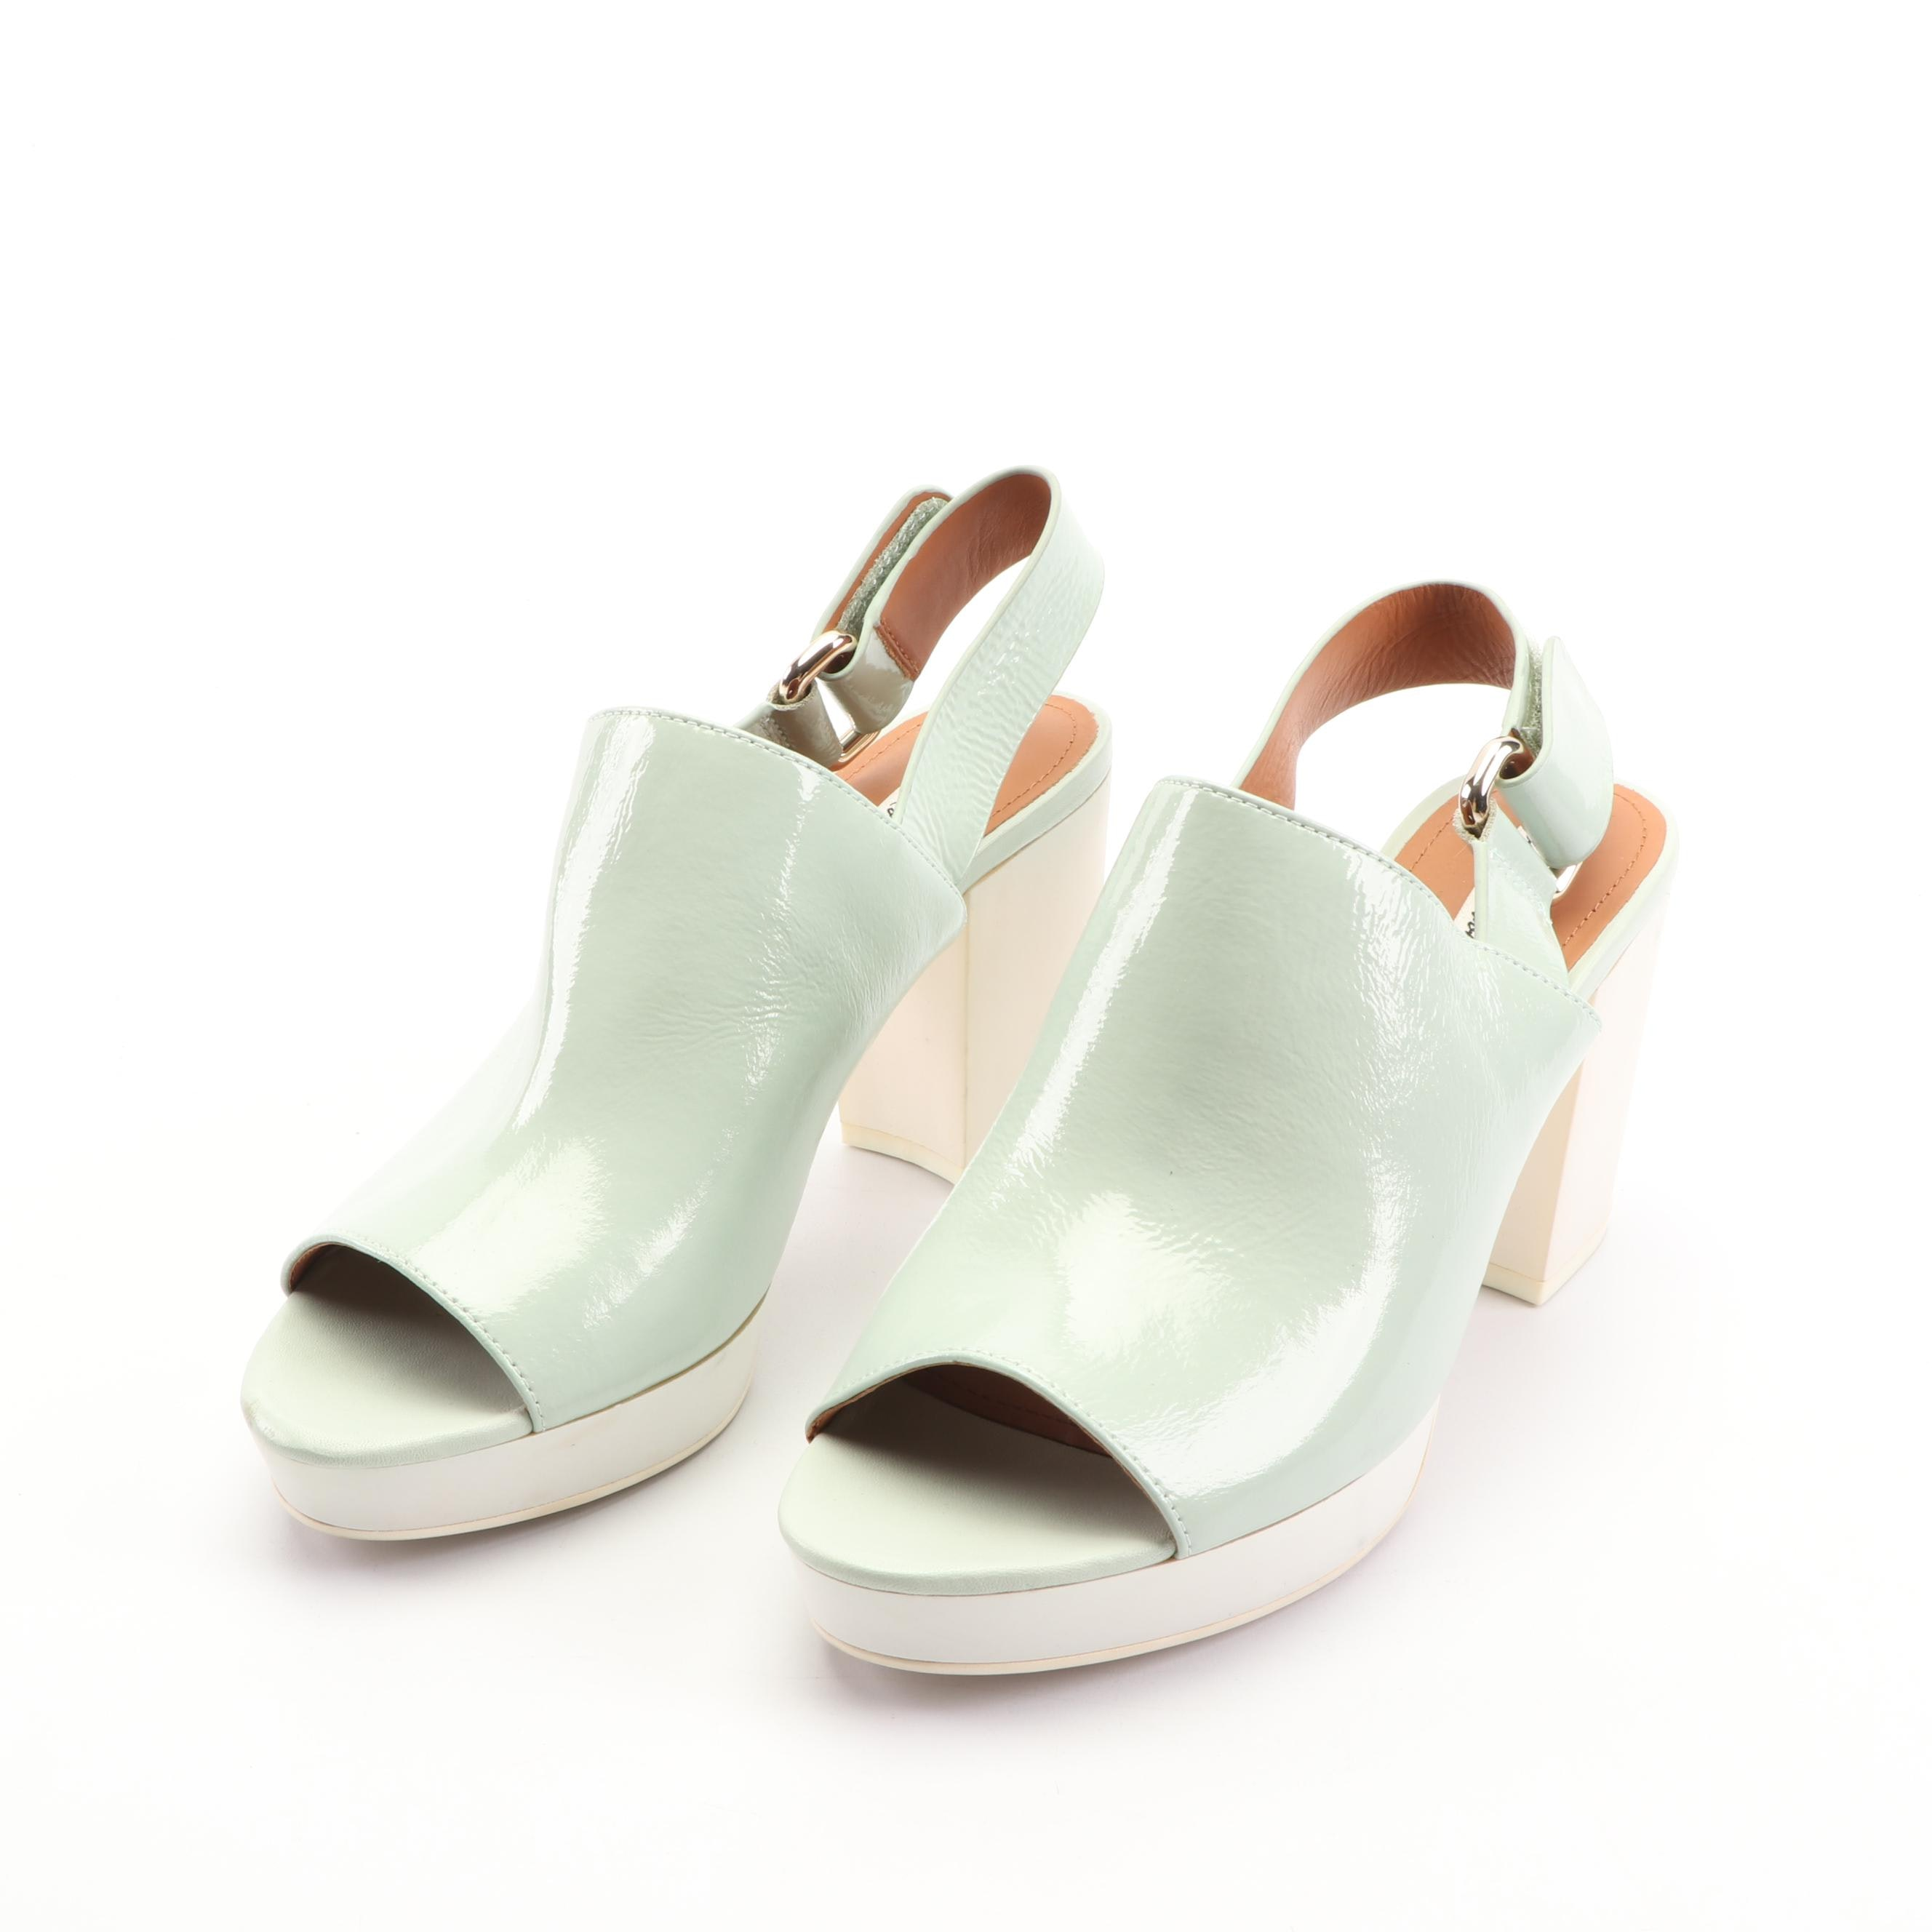 & Other Stories Aqua Patent Leather Platform Sandals